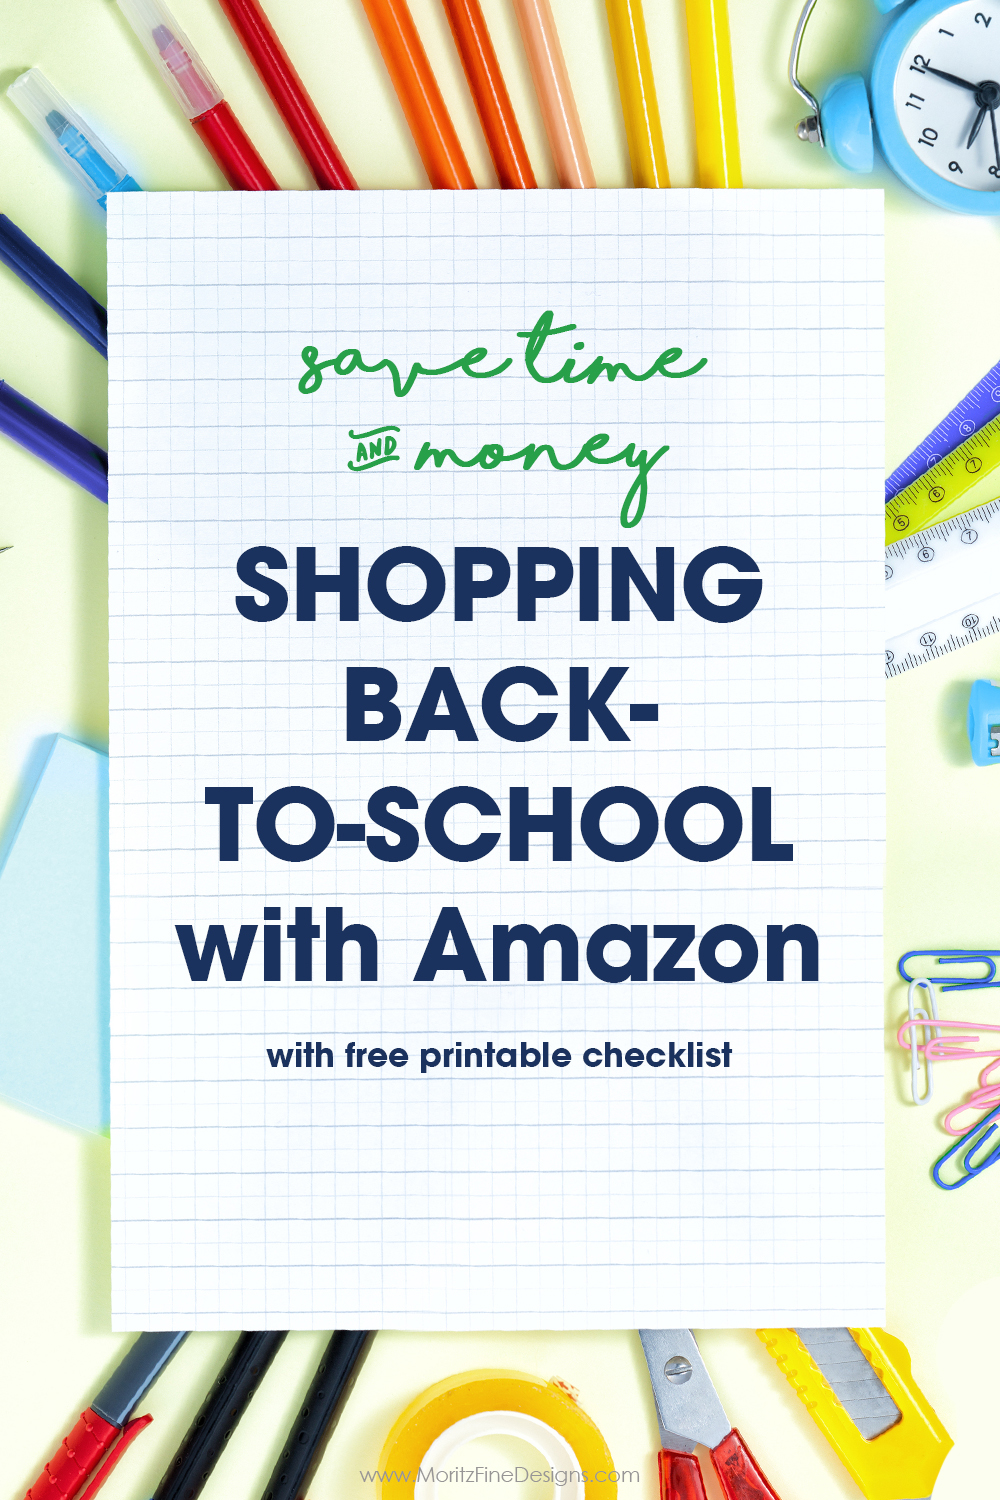 Skip the hassle of shopping big box stores and save time and money by shopping Amazon for back to school supplies and necessities!